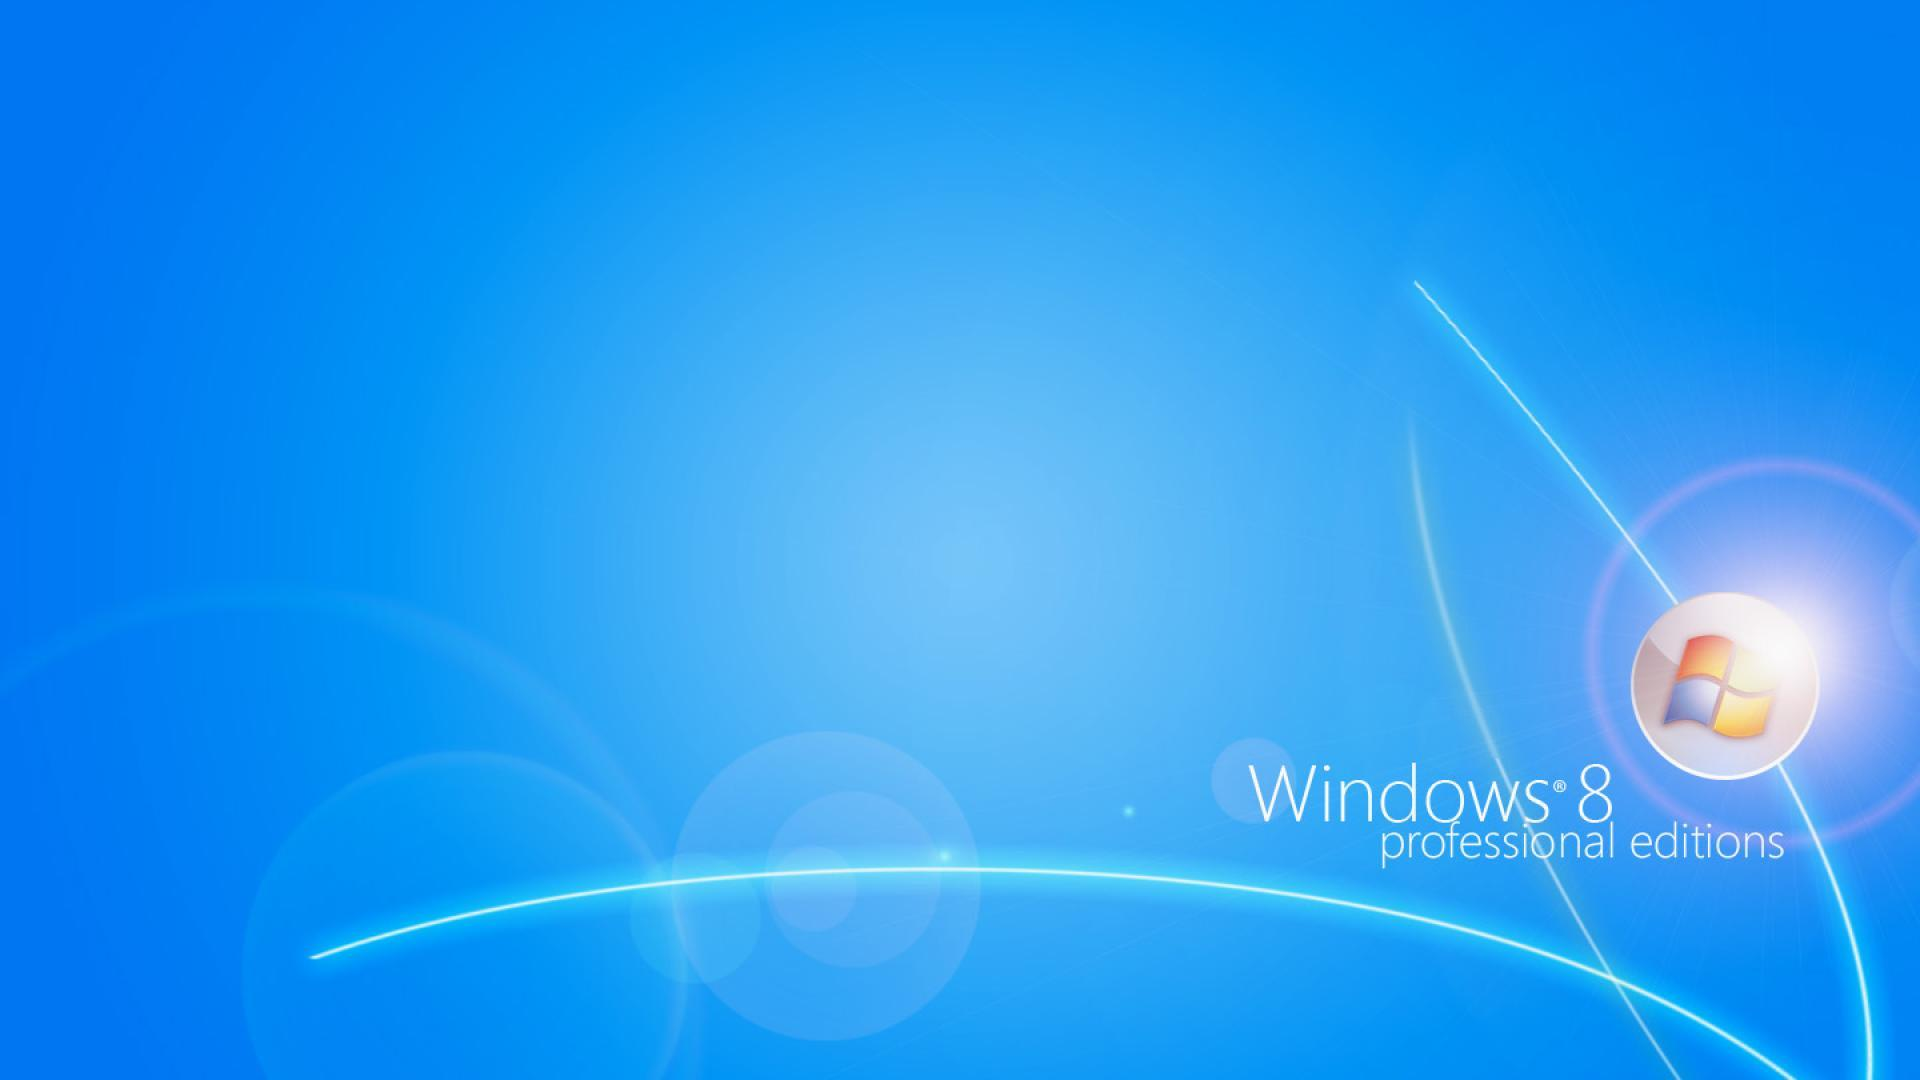 Wallpapers For Windows 8 Pro Wallpaper Hd 1080p